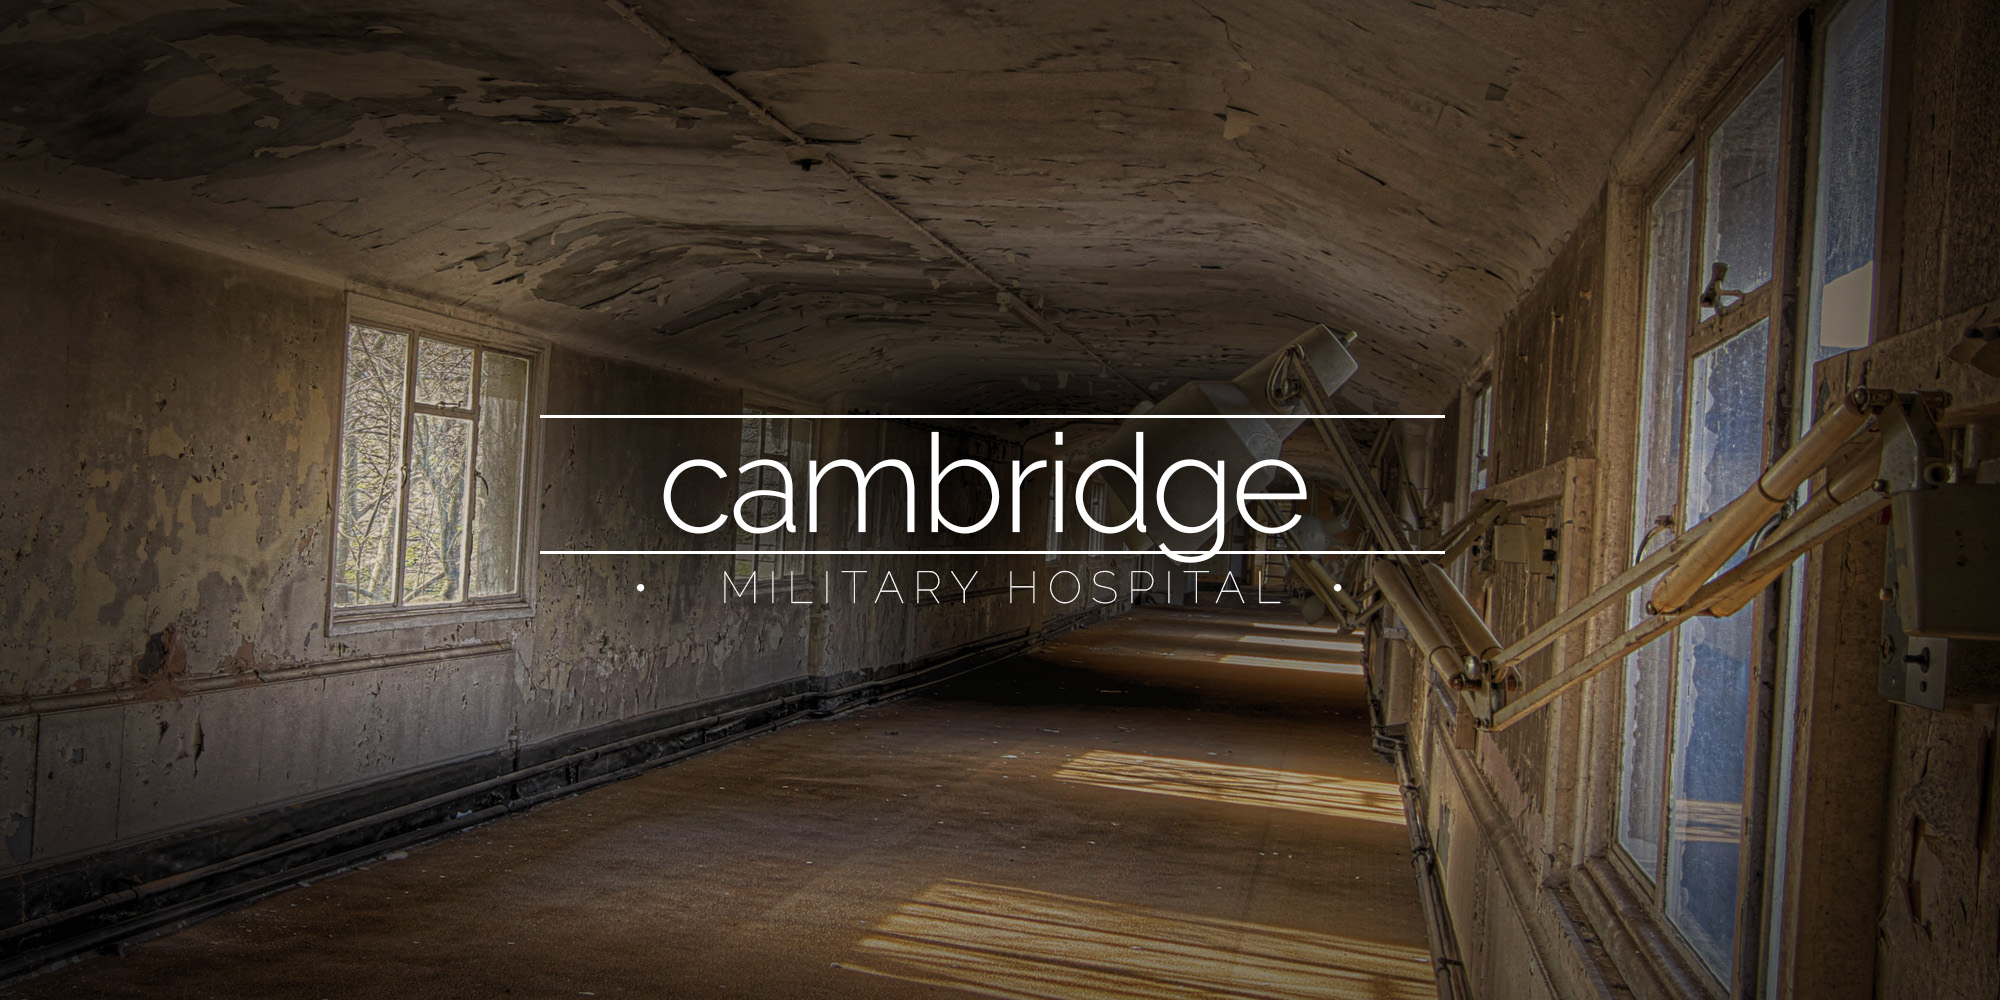 CMH Cambridge Military Hospital